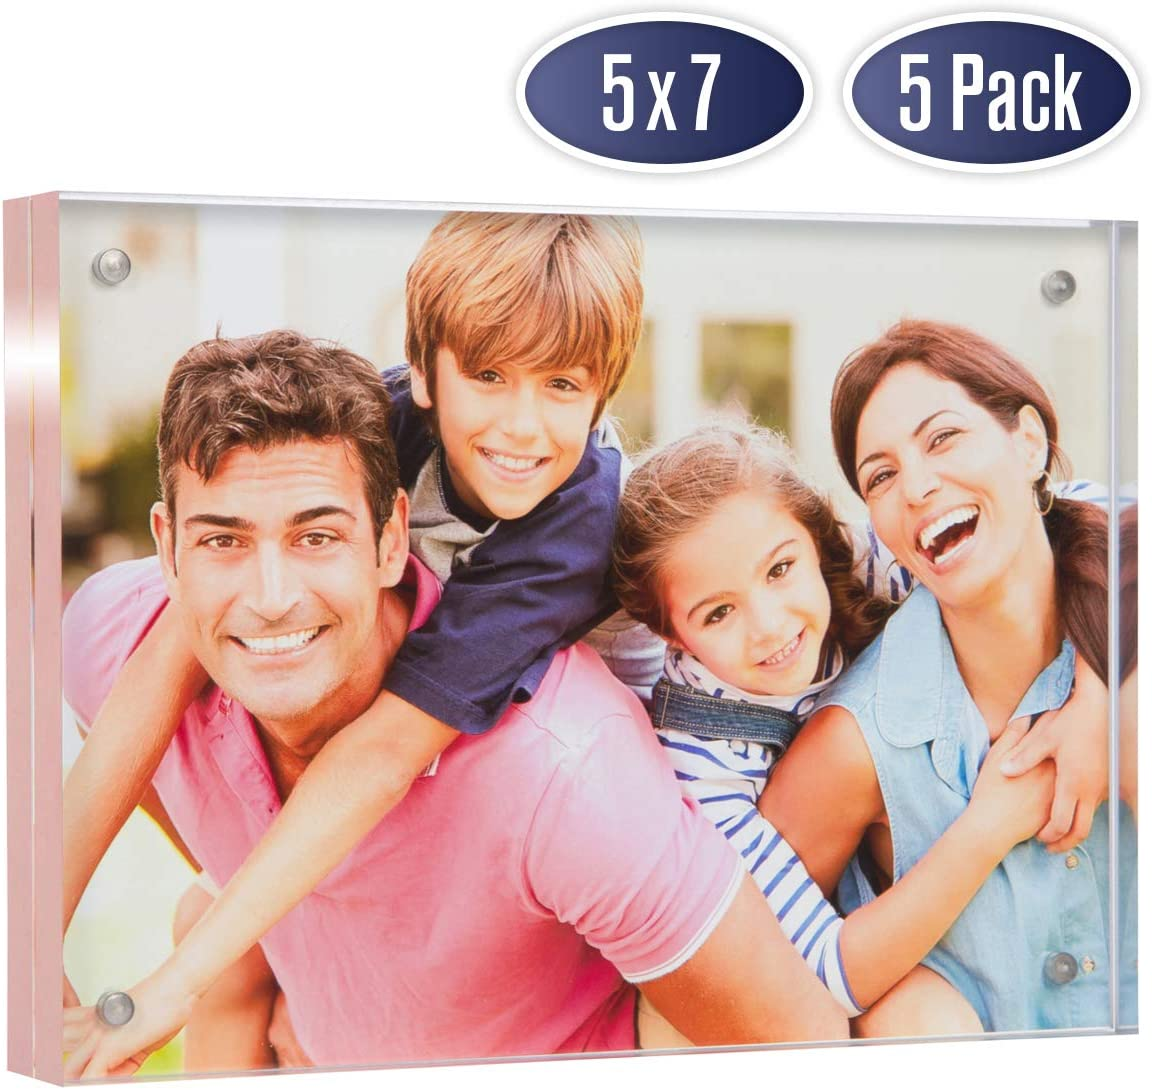 Acrylic Picture Frame 5x7 with Rose Gold Edges - Double Sided Magnetic Photo Frame, 24 mm Thick Clear Picture Frame, 5 x 7 Inches Acrylic Frame, Modern and Self Standing for Desktop Display (5 Pack)